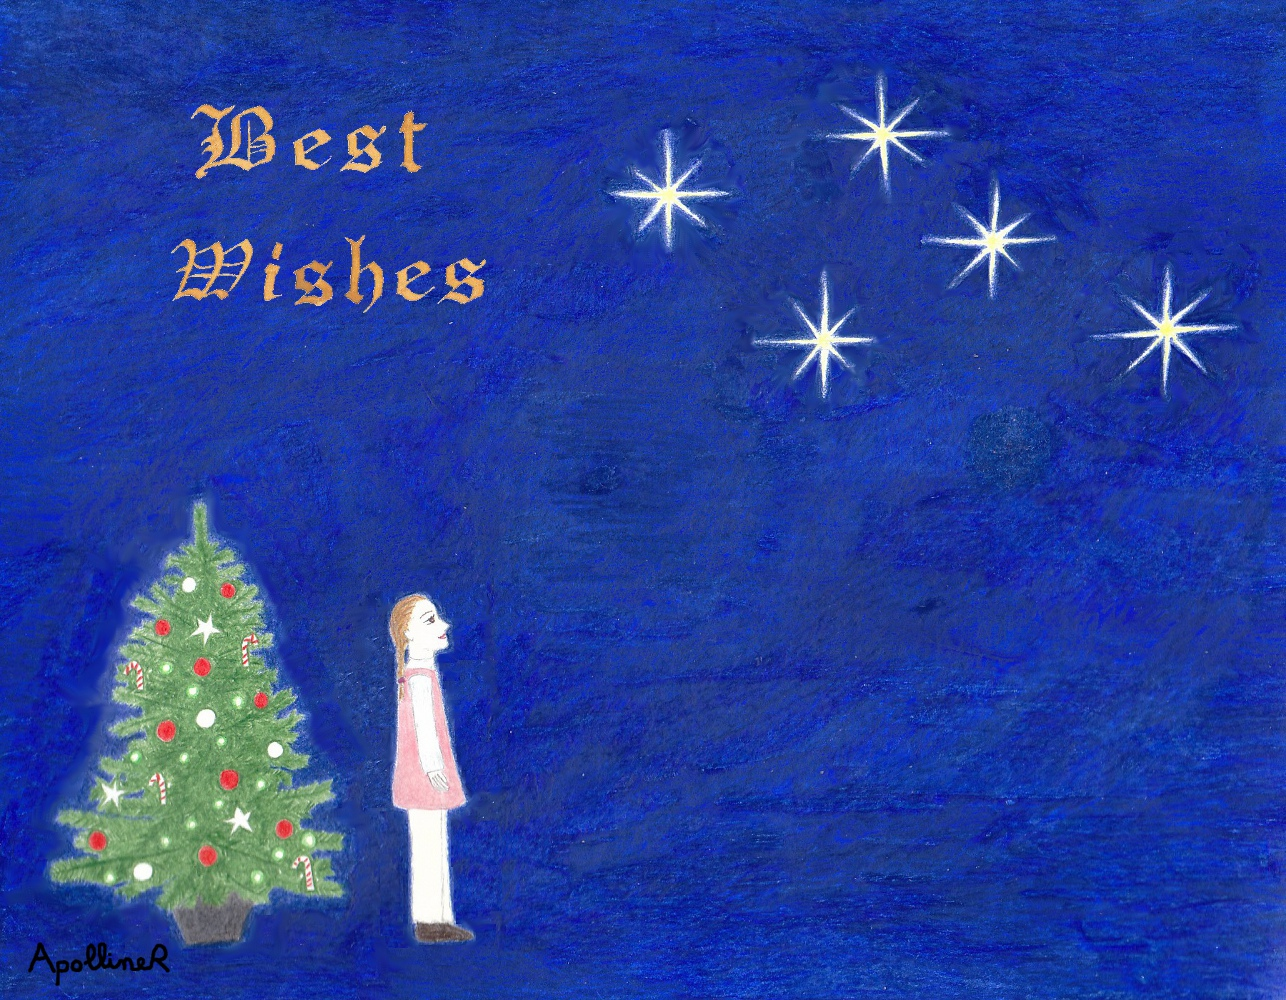 Best Wishes card illustrated with a Christmas tree and a little girl watching stars